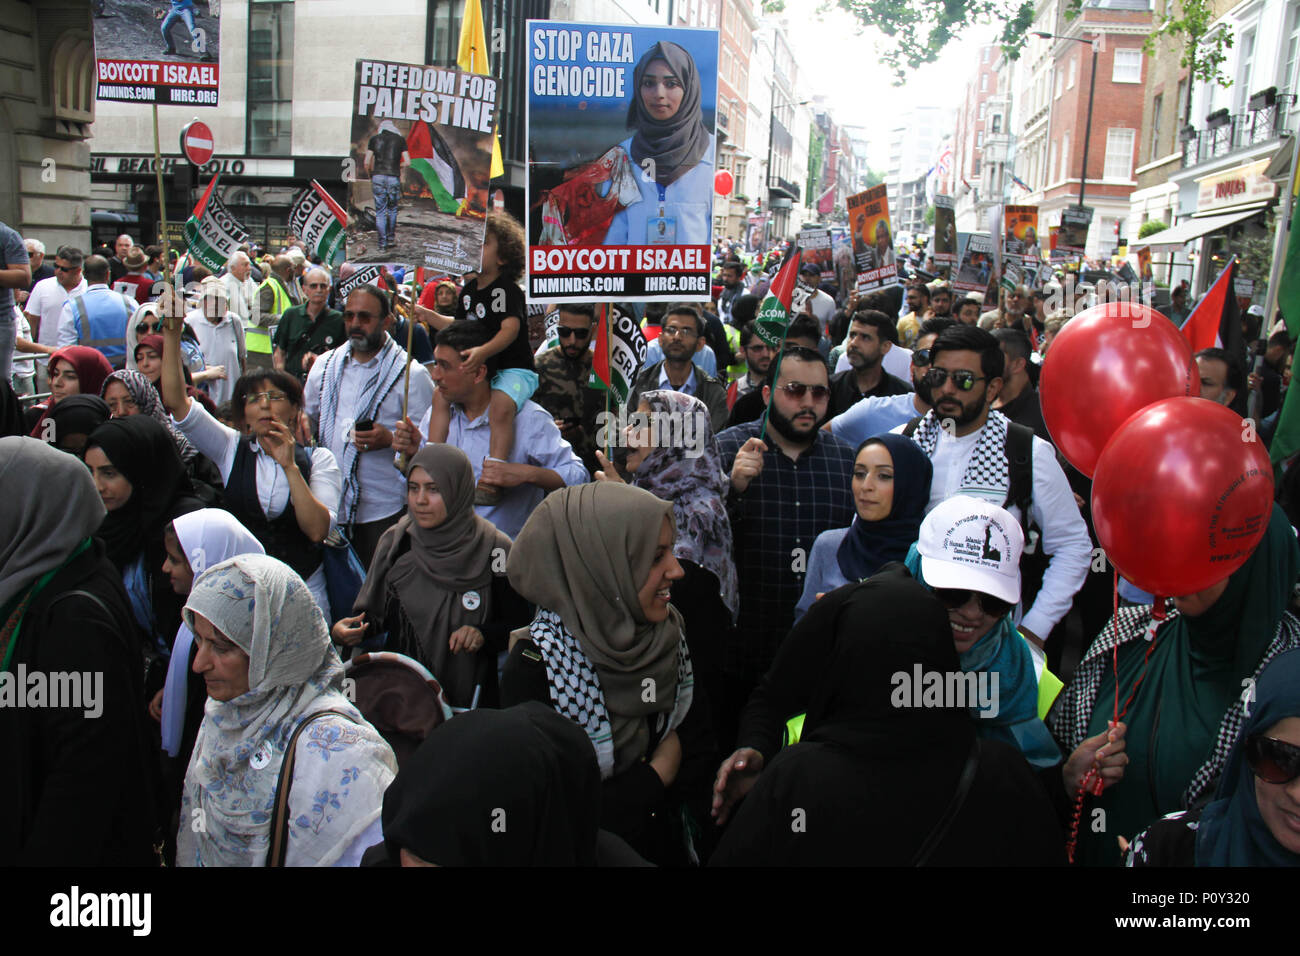 London, UK - 10 June 2018: Protestors take part in a demonstration outside the Saudi Arabia Embassy for Al Quds Day on 10 June 2018. A placard with a photo of the slain Razan al-Najjar, a  21-year-old Palestinian medical nurse shot dead by an Israeli sniper during a Friday protest can be seen held up by a demonstrator. The annual event held on the last Friday of Ramadan that was initiated in 1979 to express support for the Palestinians and oppose Zionism and Israel. Credit: David Mbiyu/ Alamy Live News - Stock Image